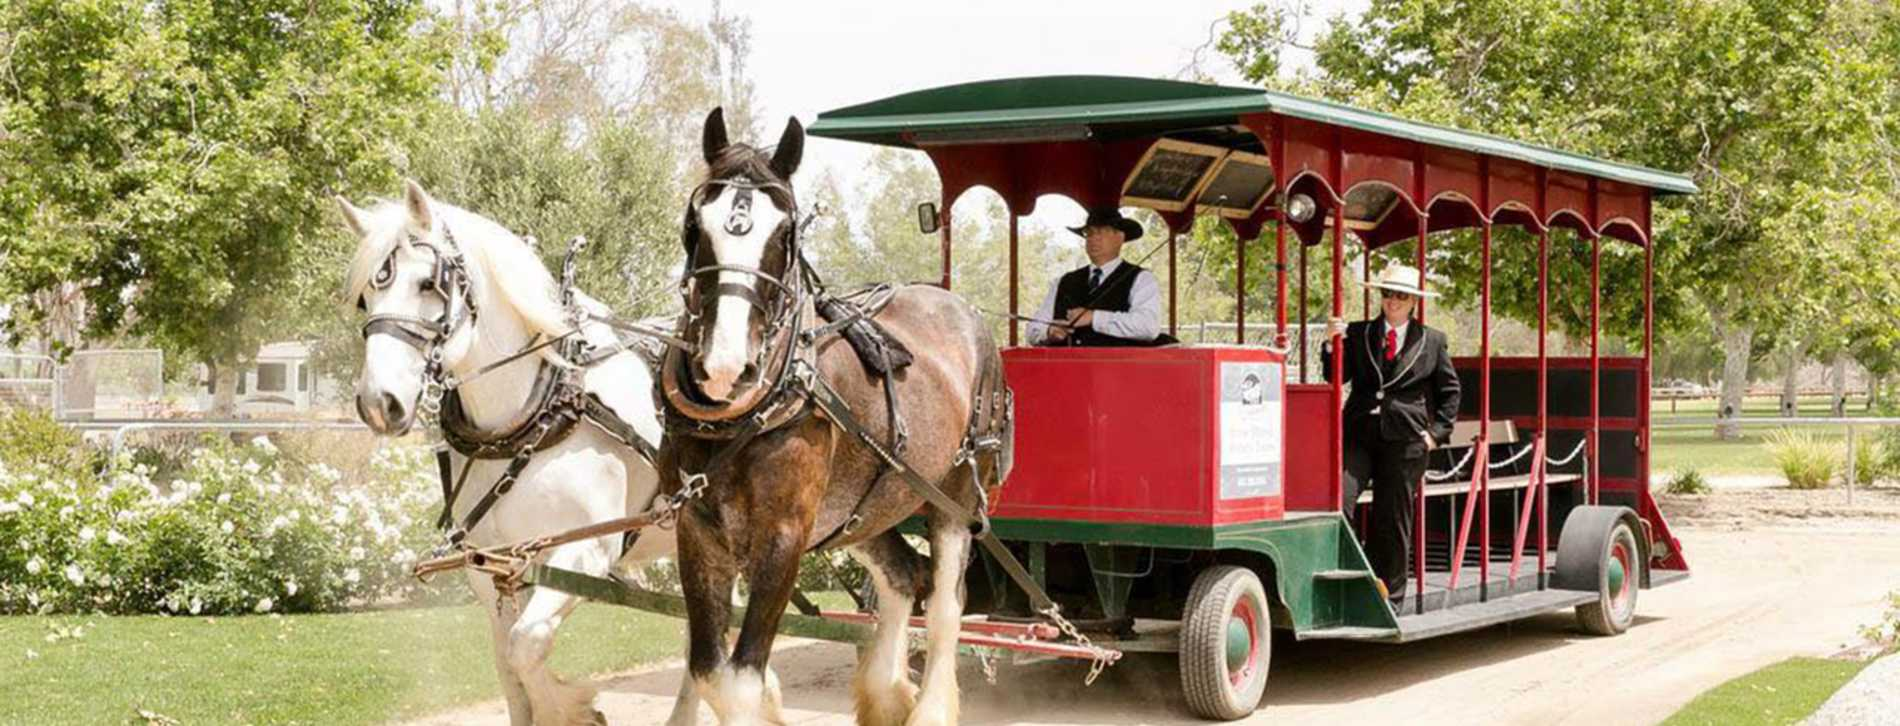 Temecula Carriage Co.